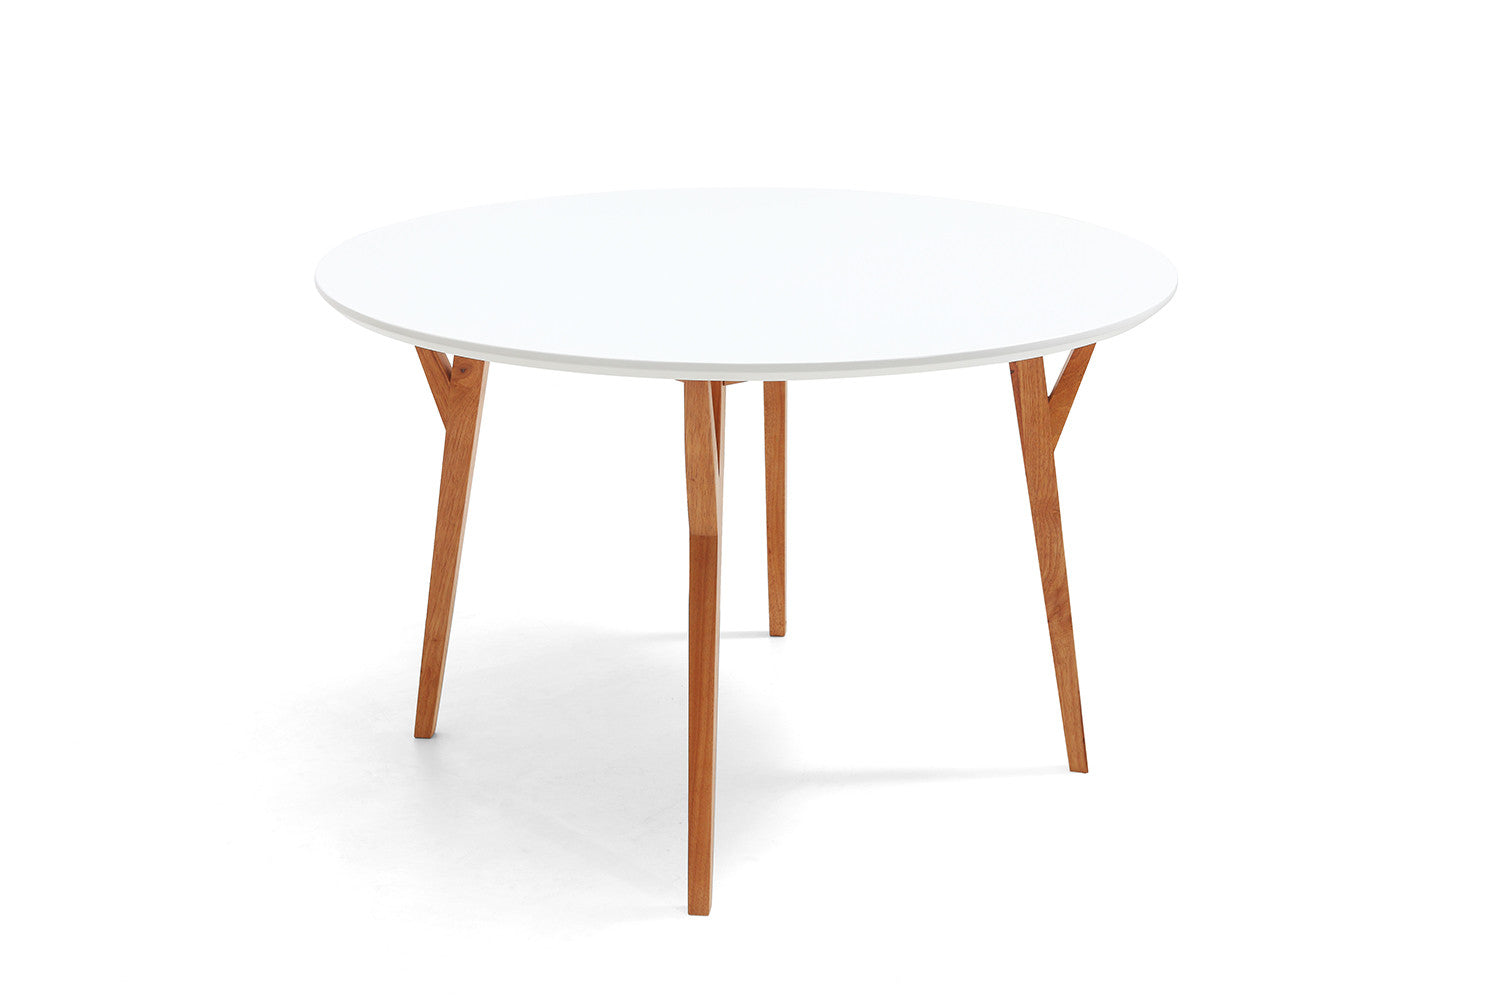 Table de salle manger ronde design scandinave moesa for Salle a manger avec table extensible